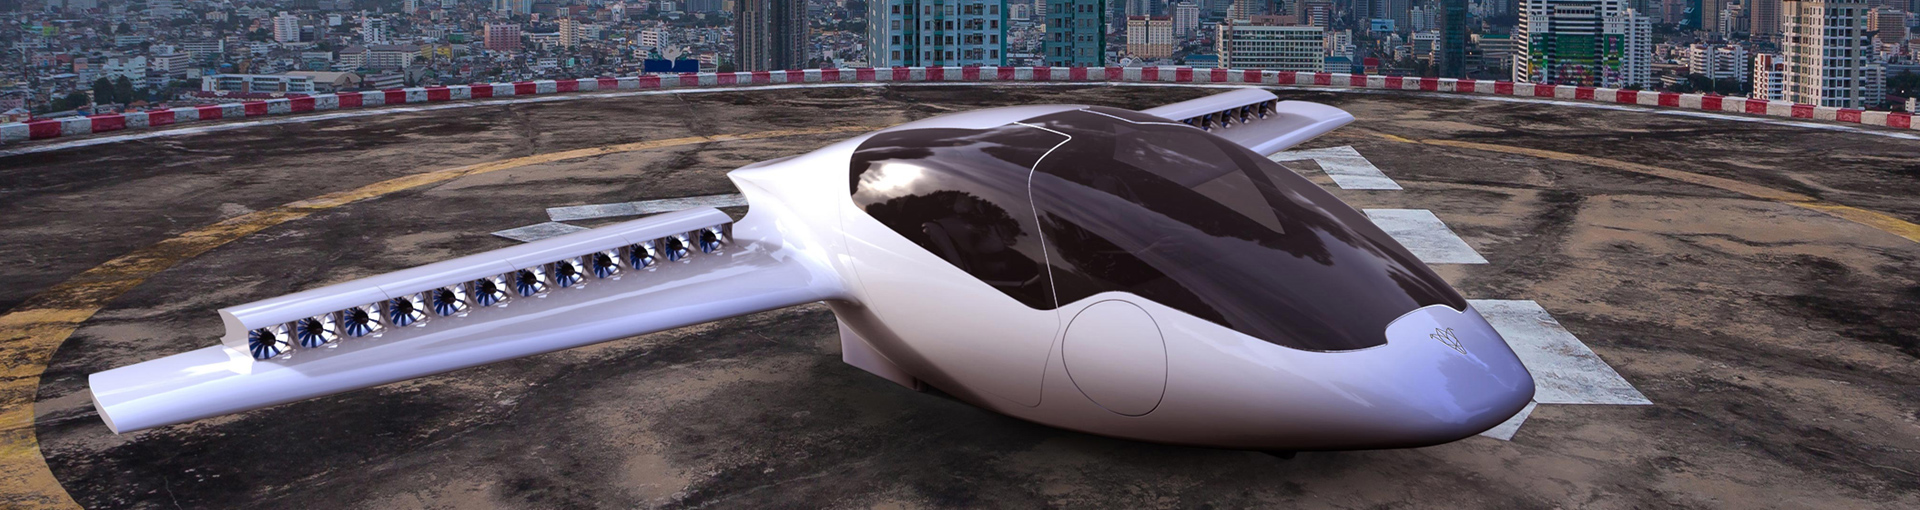 LILIUM: FIRST ELECTRIC VERTICAL TAKE-OFF AND LANDING JET